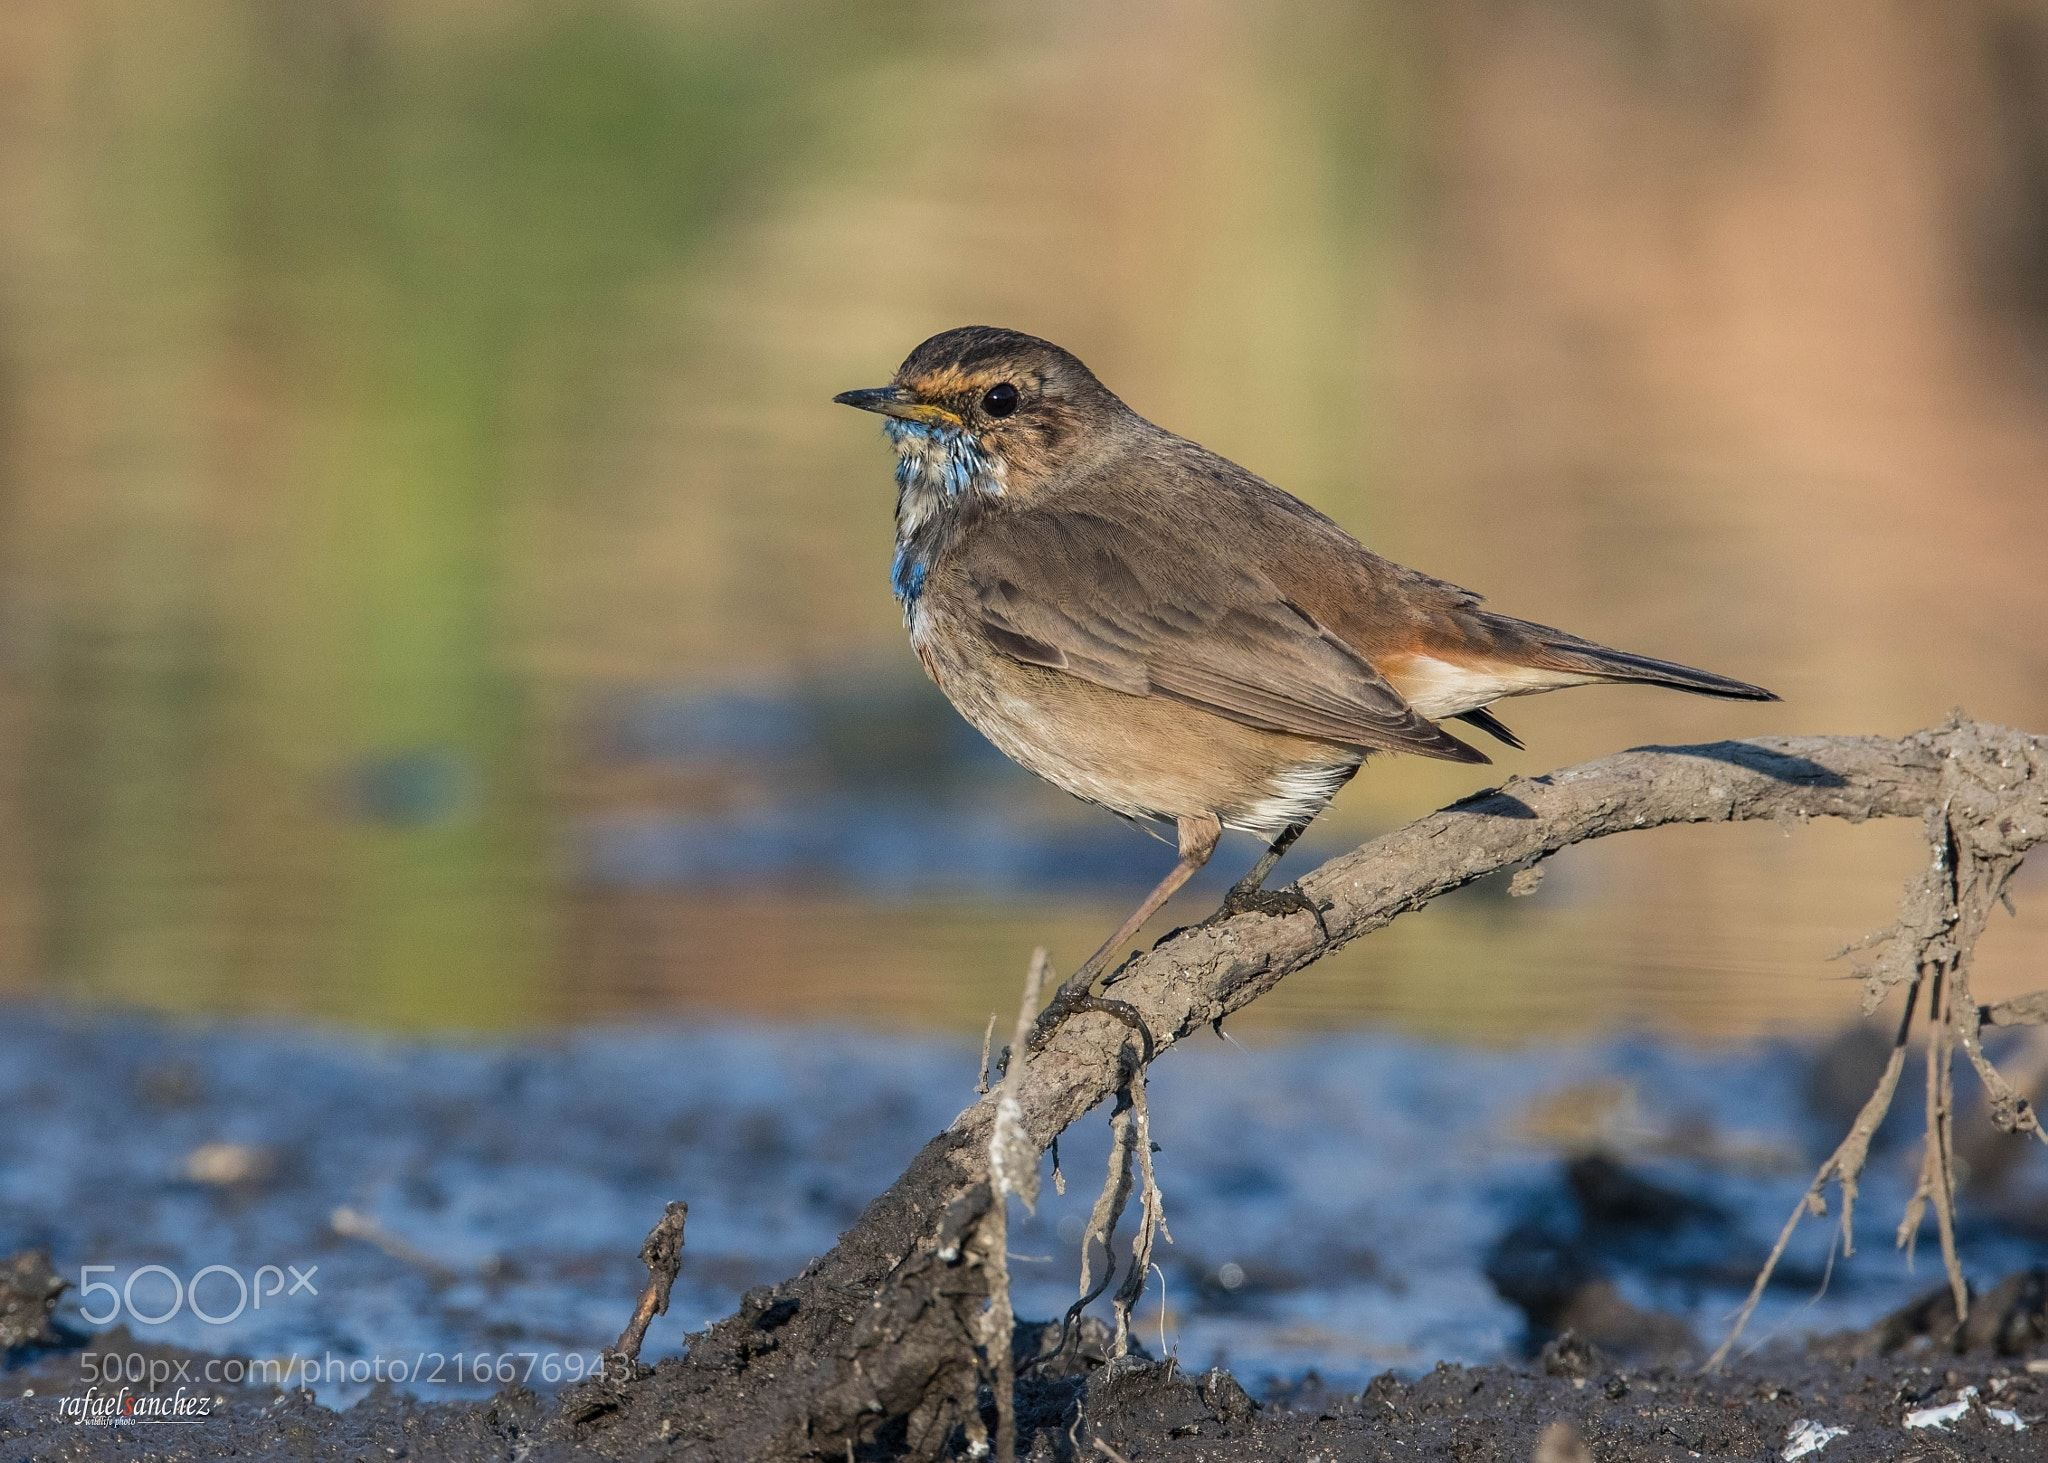 Pechiazul - Bluethroat (Rafael Sanchez Sanchez / Las Palmas de G.C. / España) #Canon EOS 5D Mark IV #animals #photo #nature